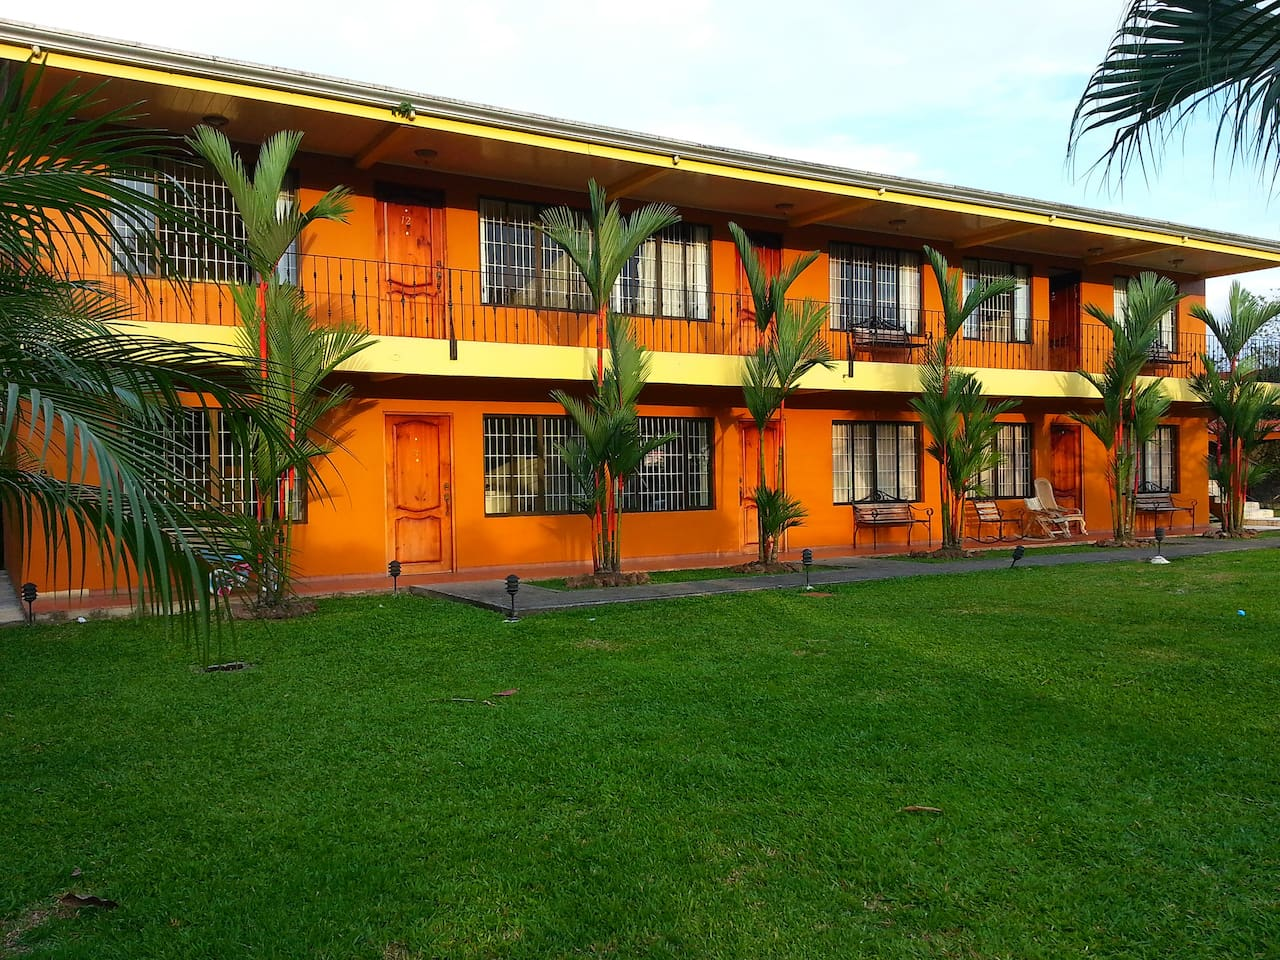 5 Furnished Condo's available with all the comforts of home and then some.